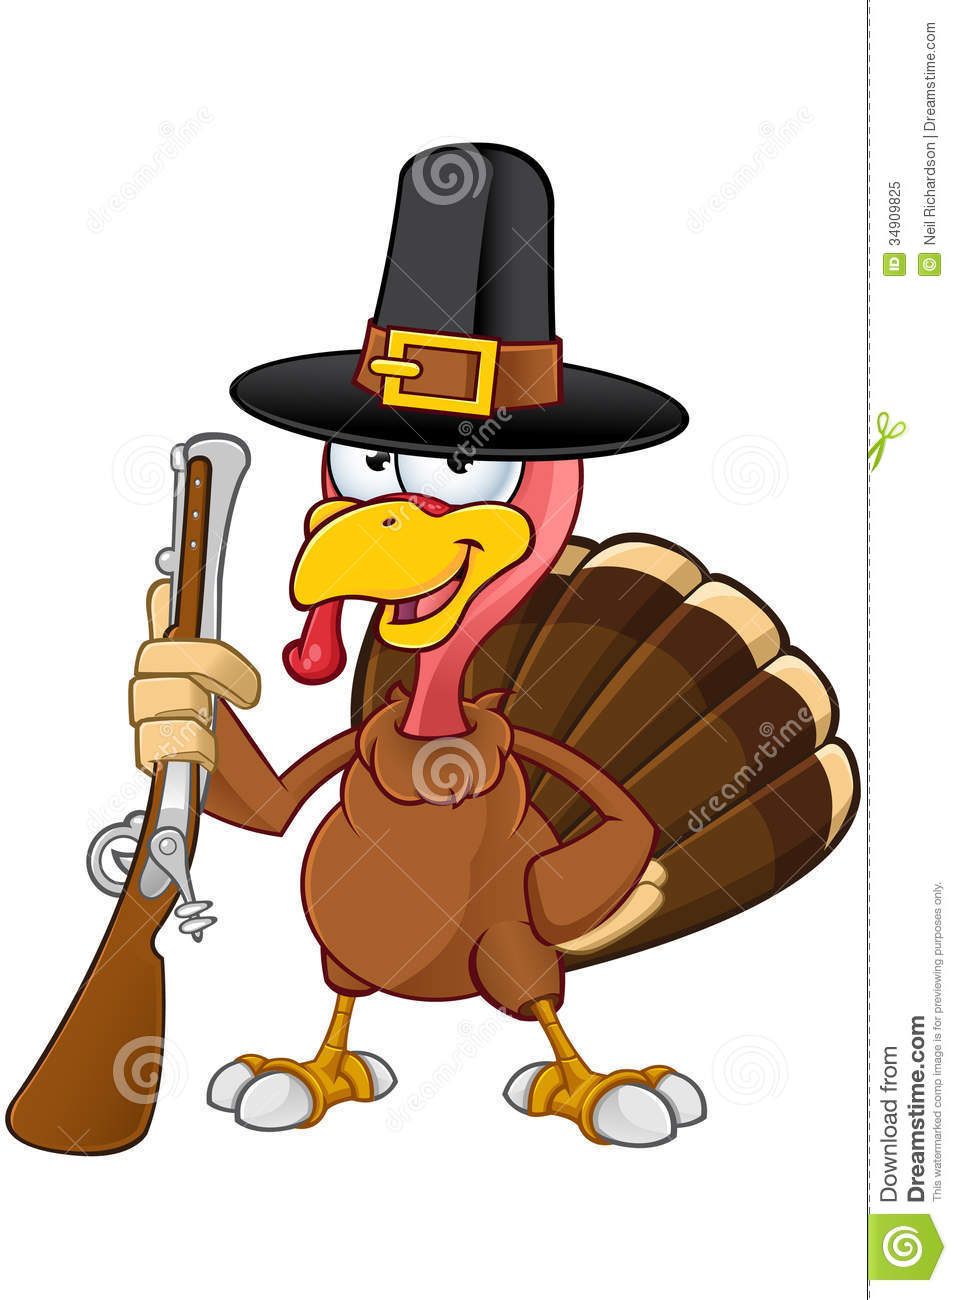 Turkey Mascot   Holding Gun Royalty Free Stock Photo   Image  34909825